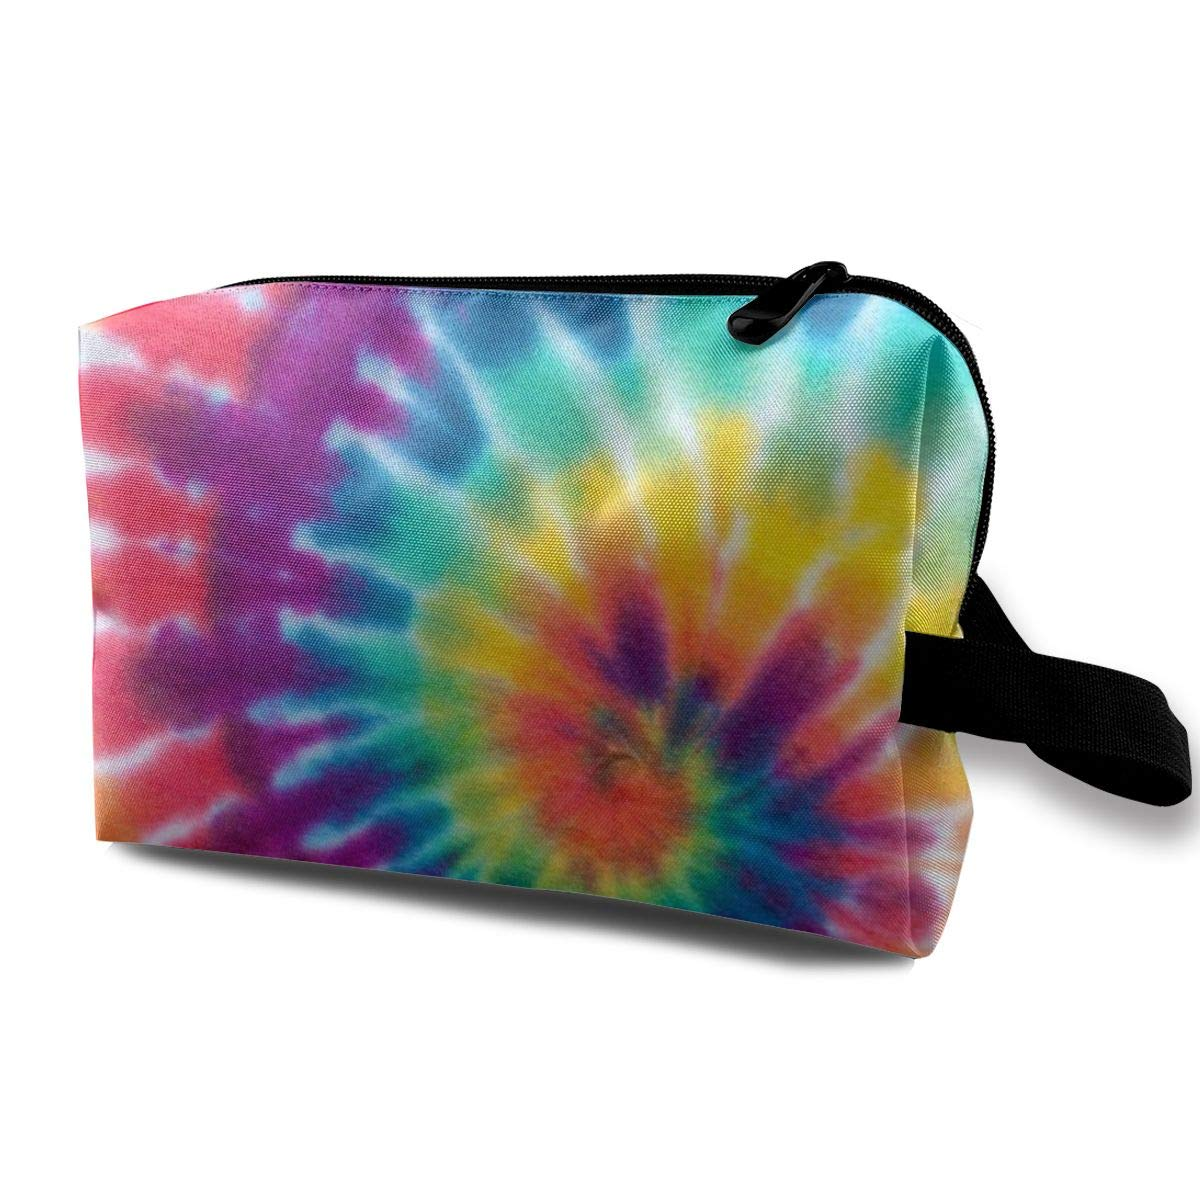 Small Cute Make up Pouch for Purse Makeup Brushes Bag Mini Travel Cosmetic Bag (Spiral Tie Dye)